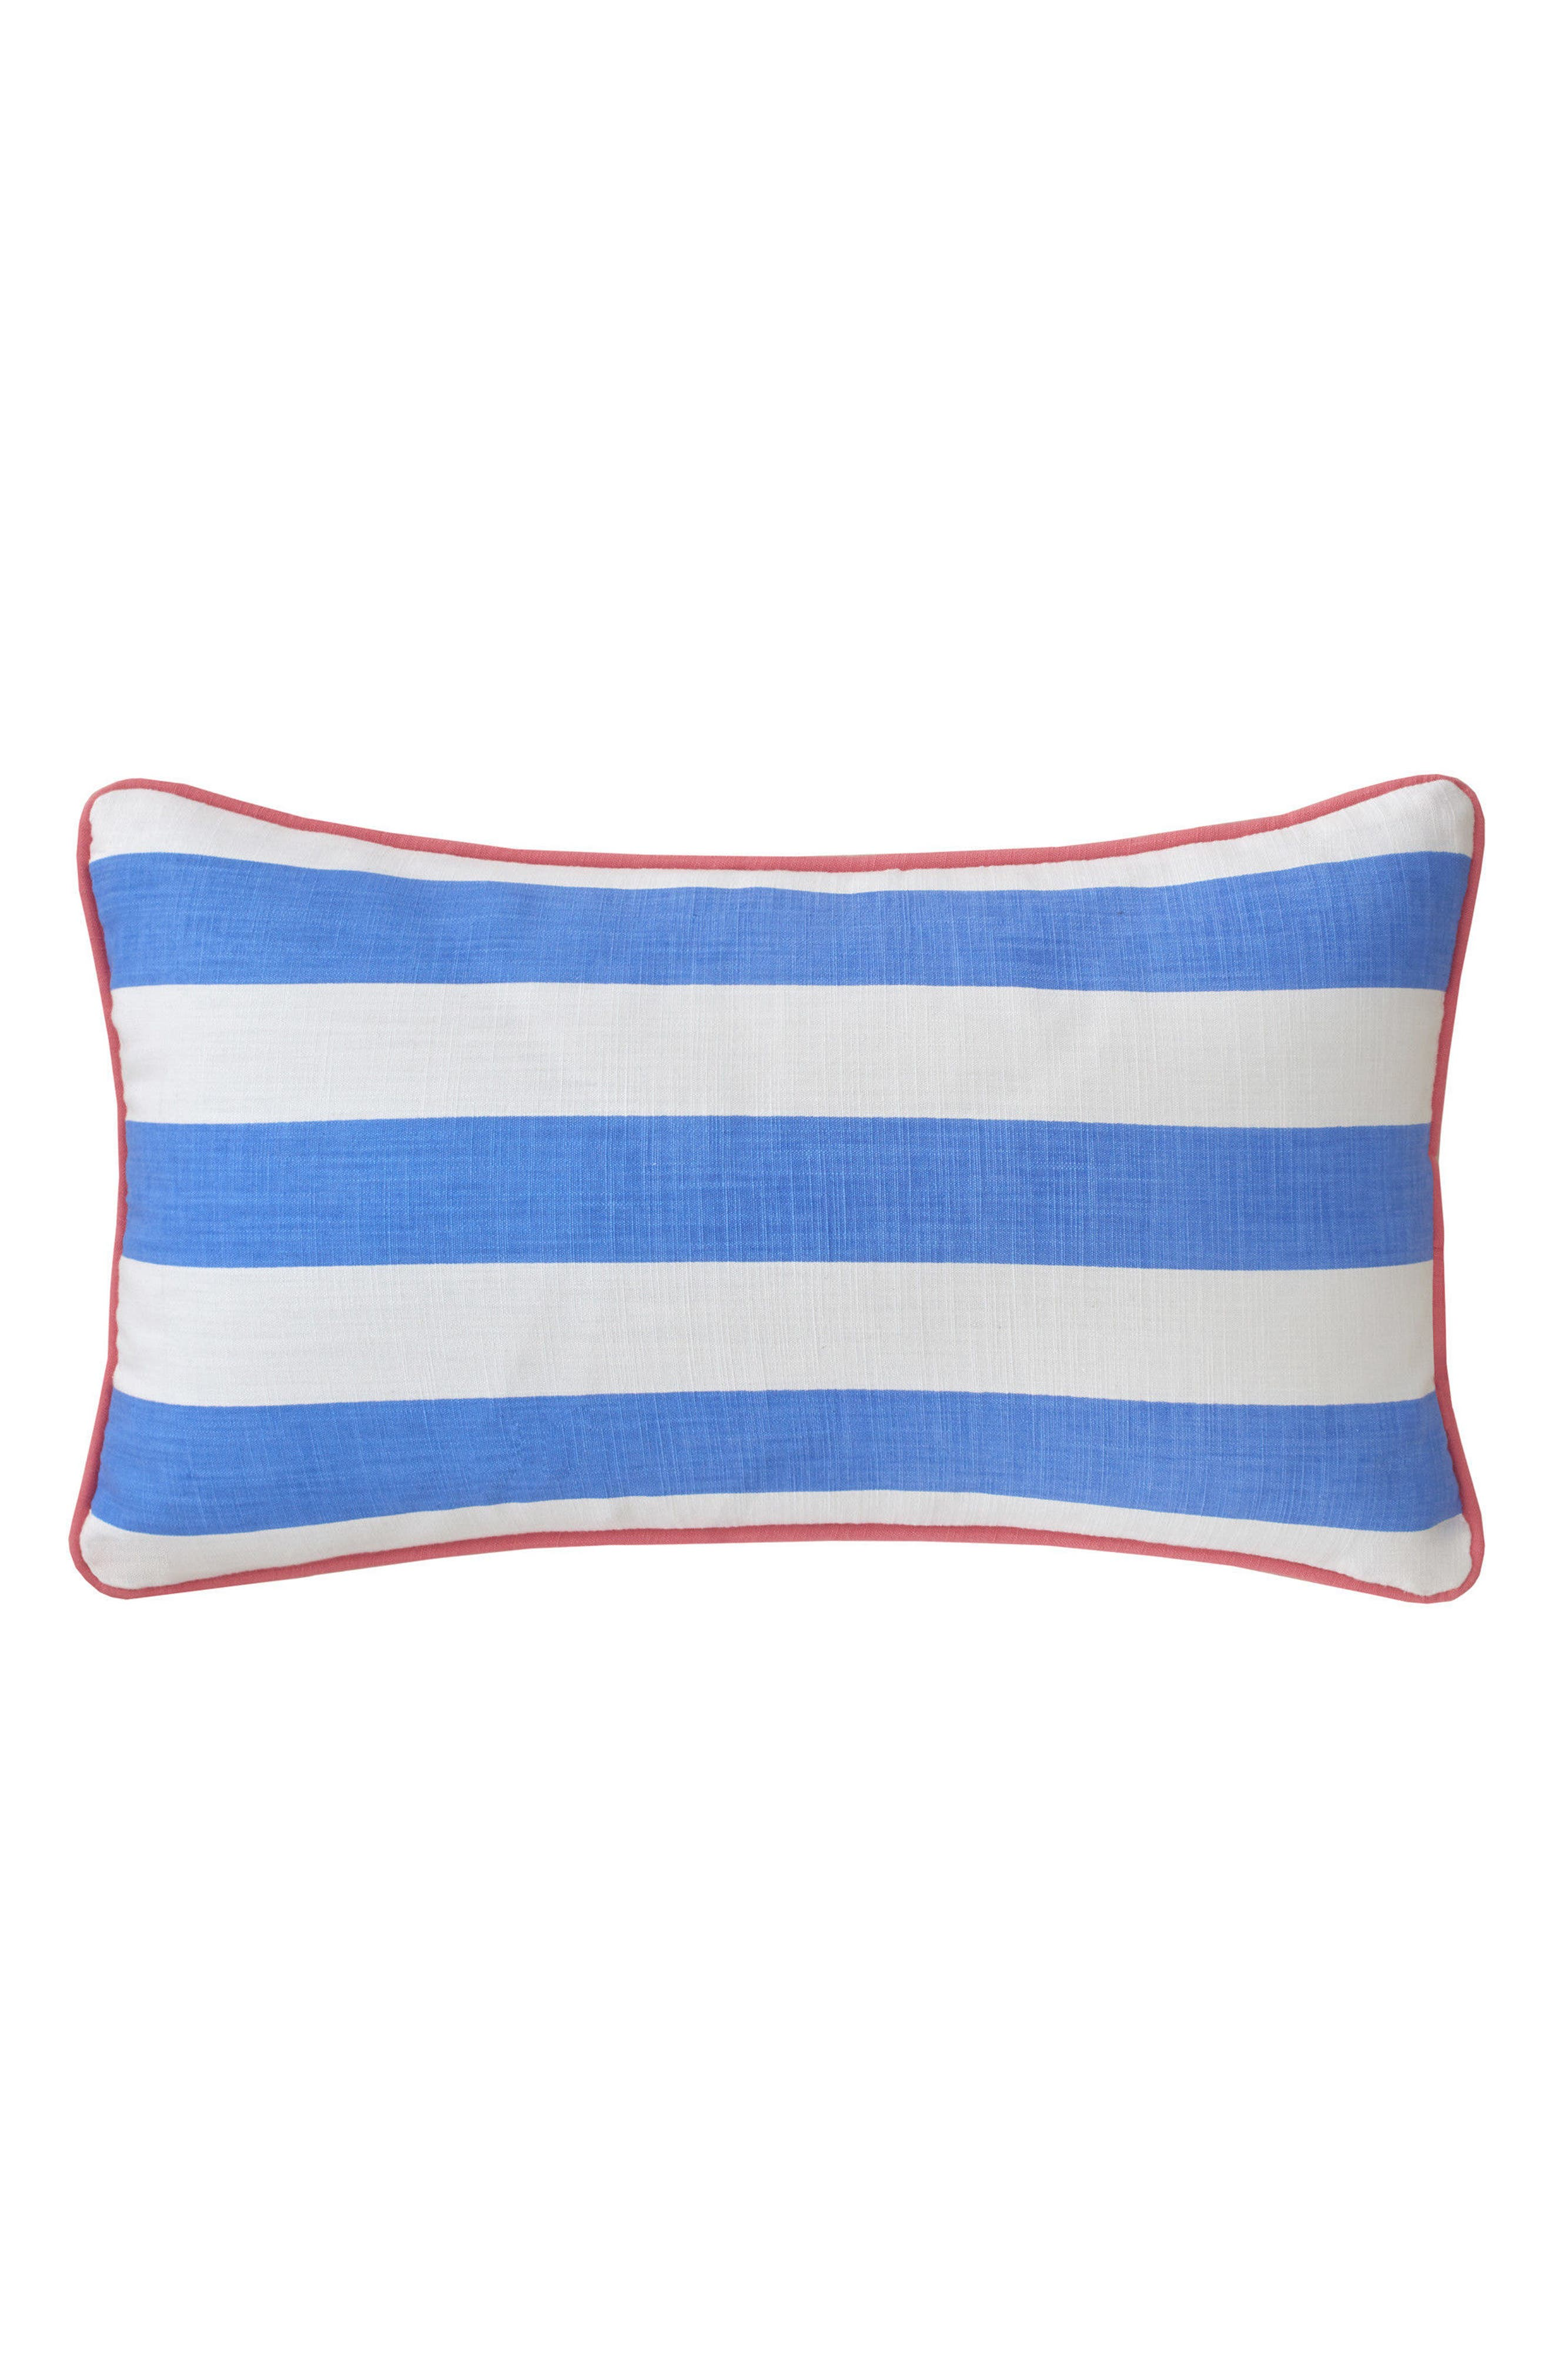 SOUTHERN TIDE Coastal Ikat Stripe Accent Pillow, Main, color, 400